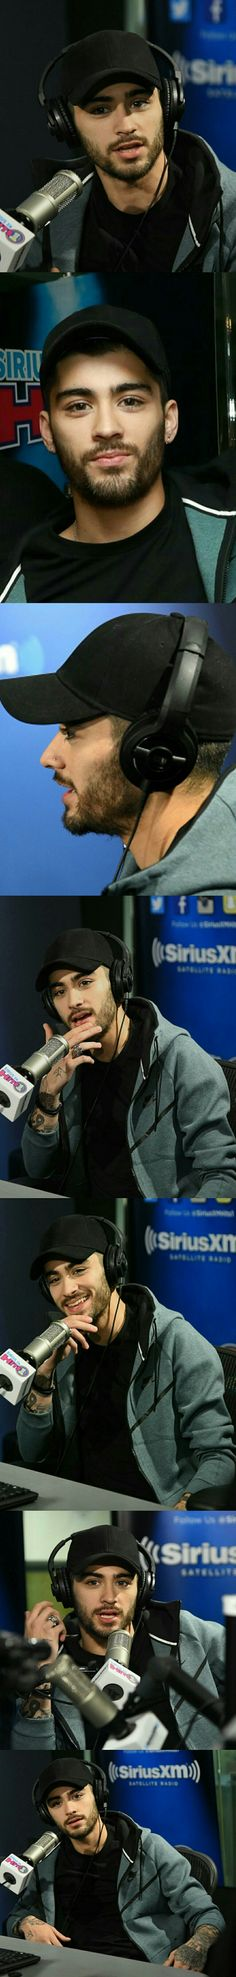 #Zayn Malik ❥ at a radio station for an interview